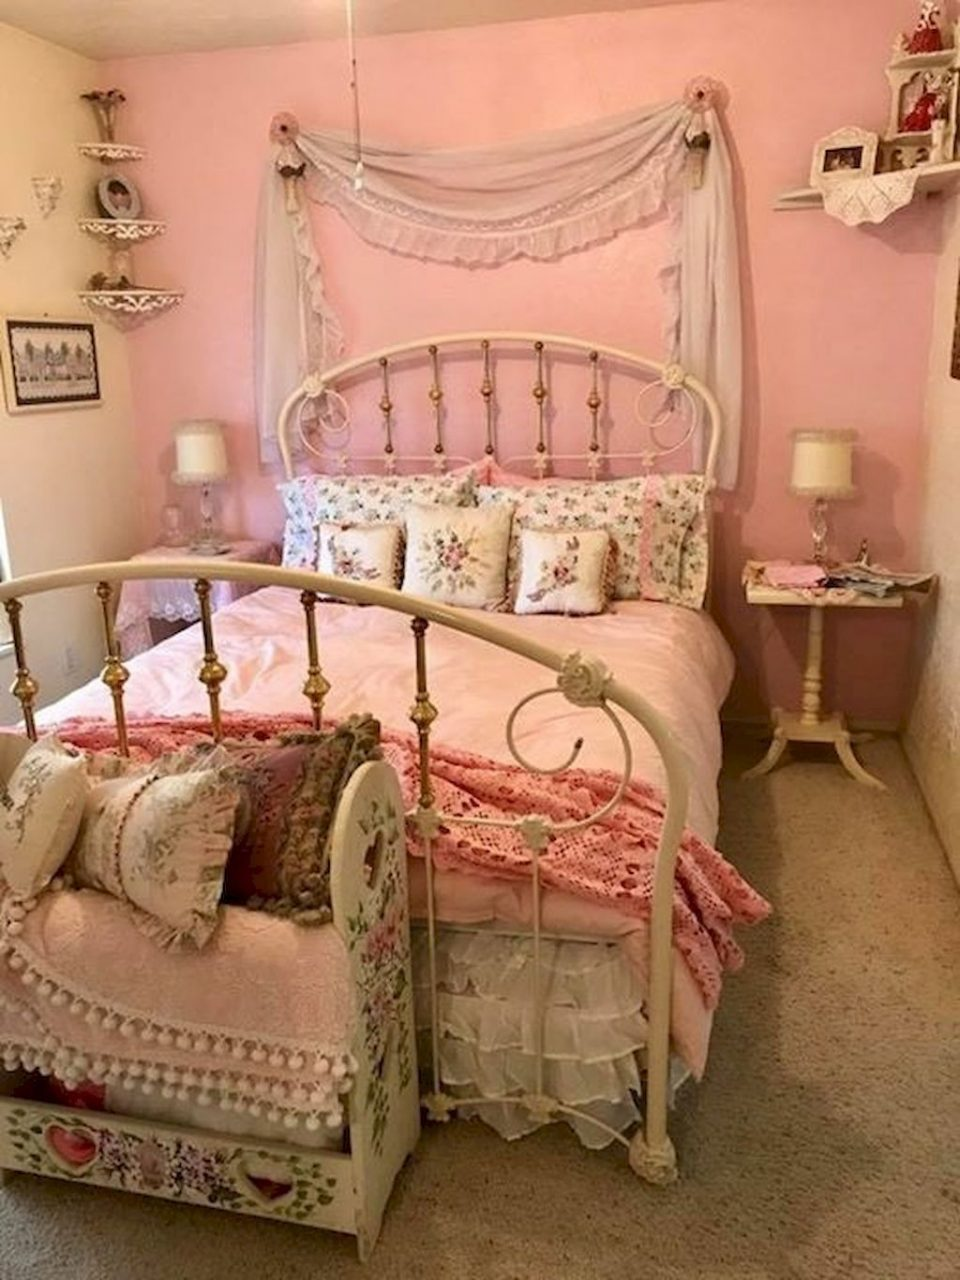 Stunning Shab Chic Bedroom Decorating Ideas 32 Shab Chic